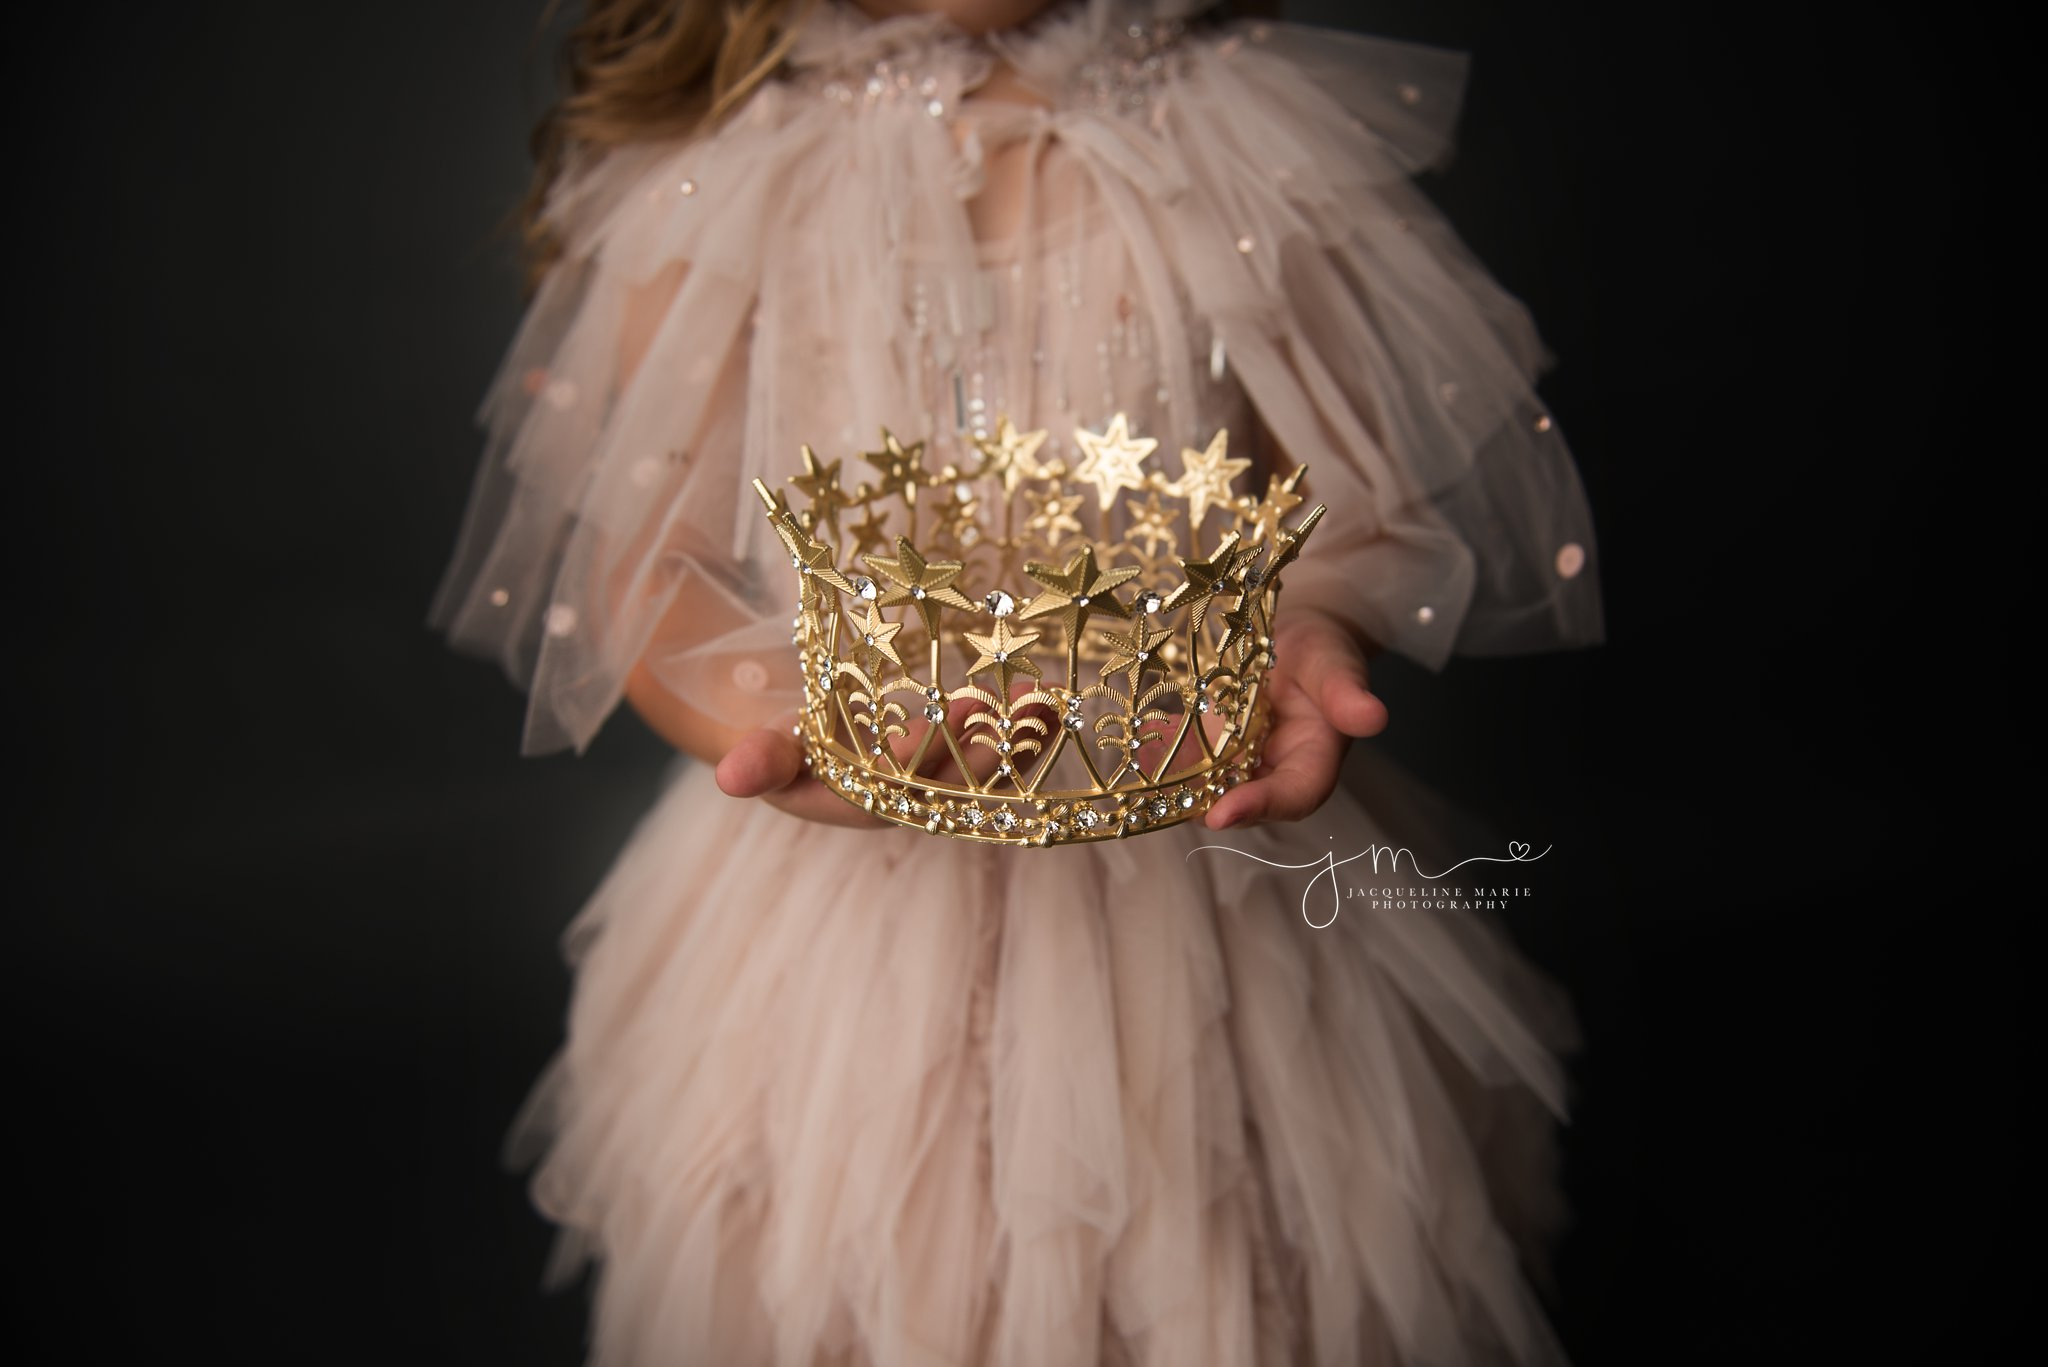 glitter photography session in columbus ohio with gold crown